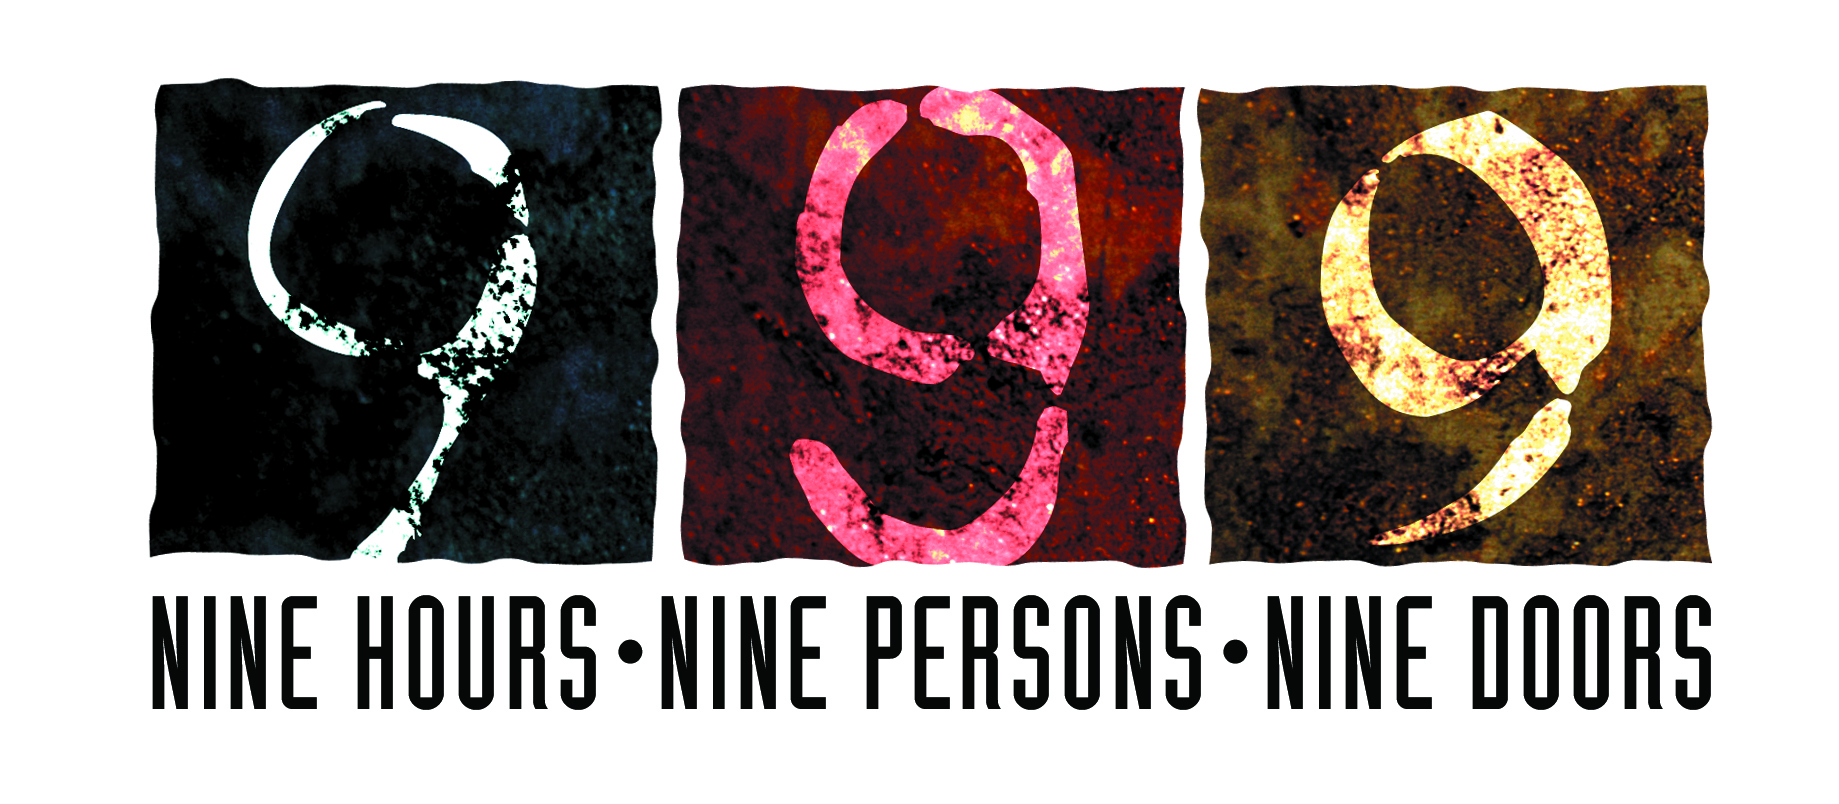 999: Nine Hours, Nine Persons, Nine Doors 2009